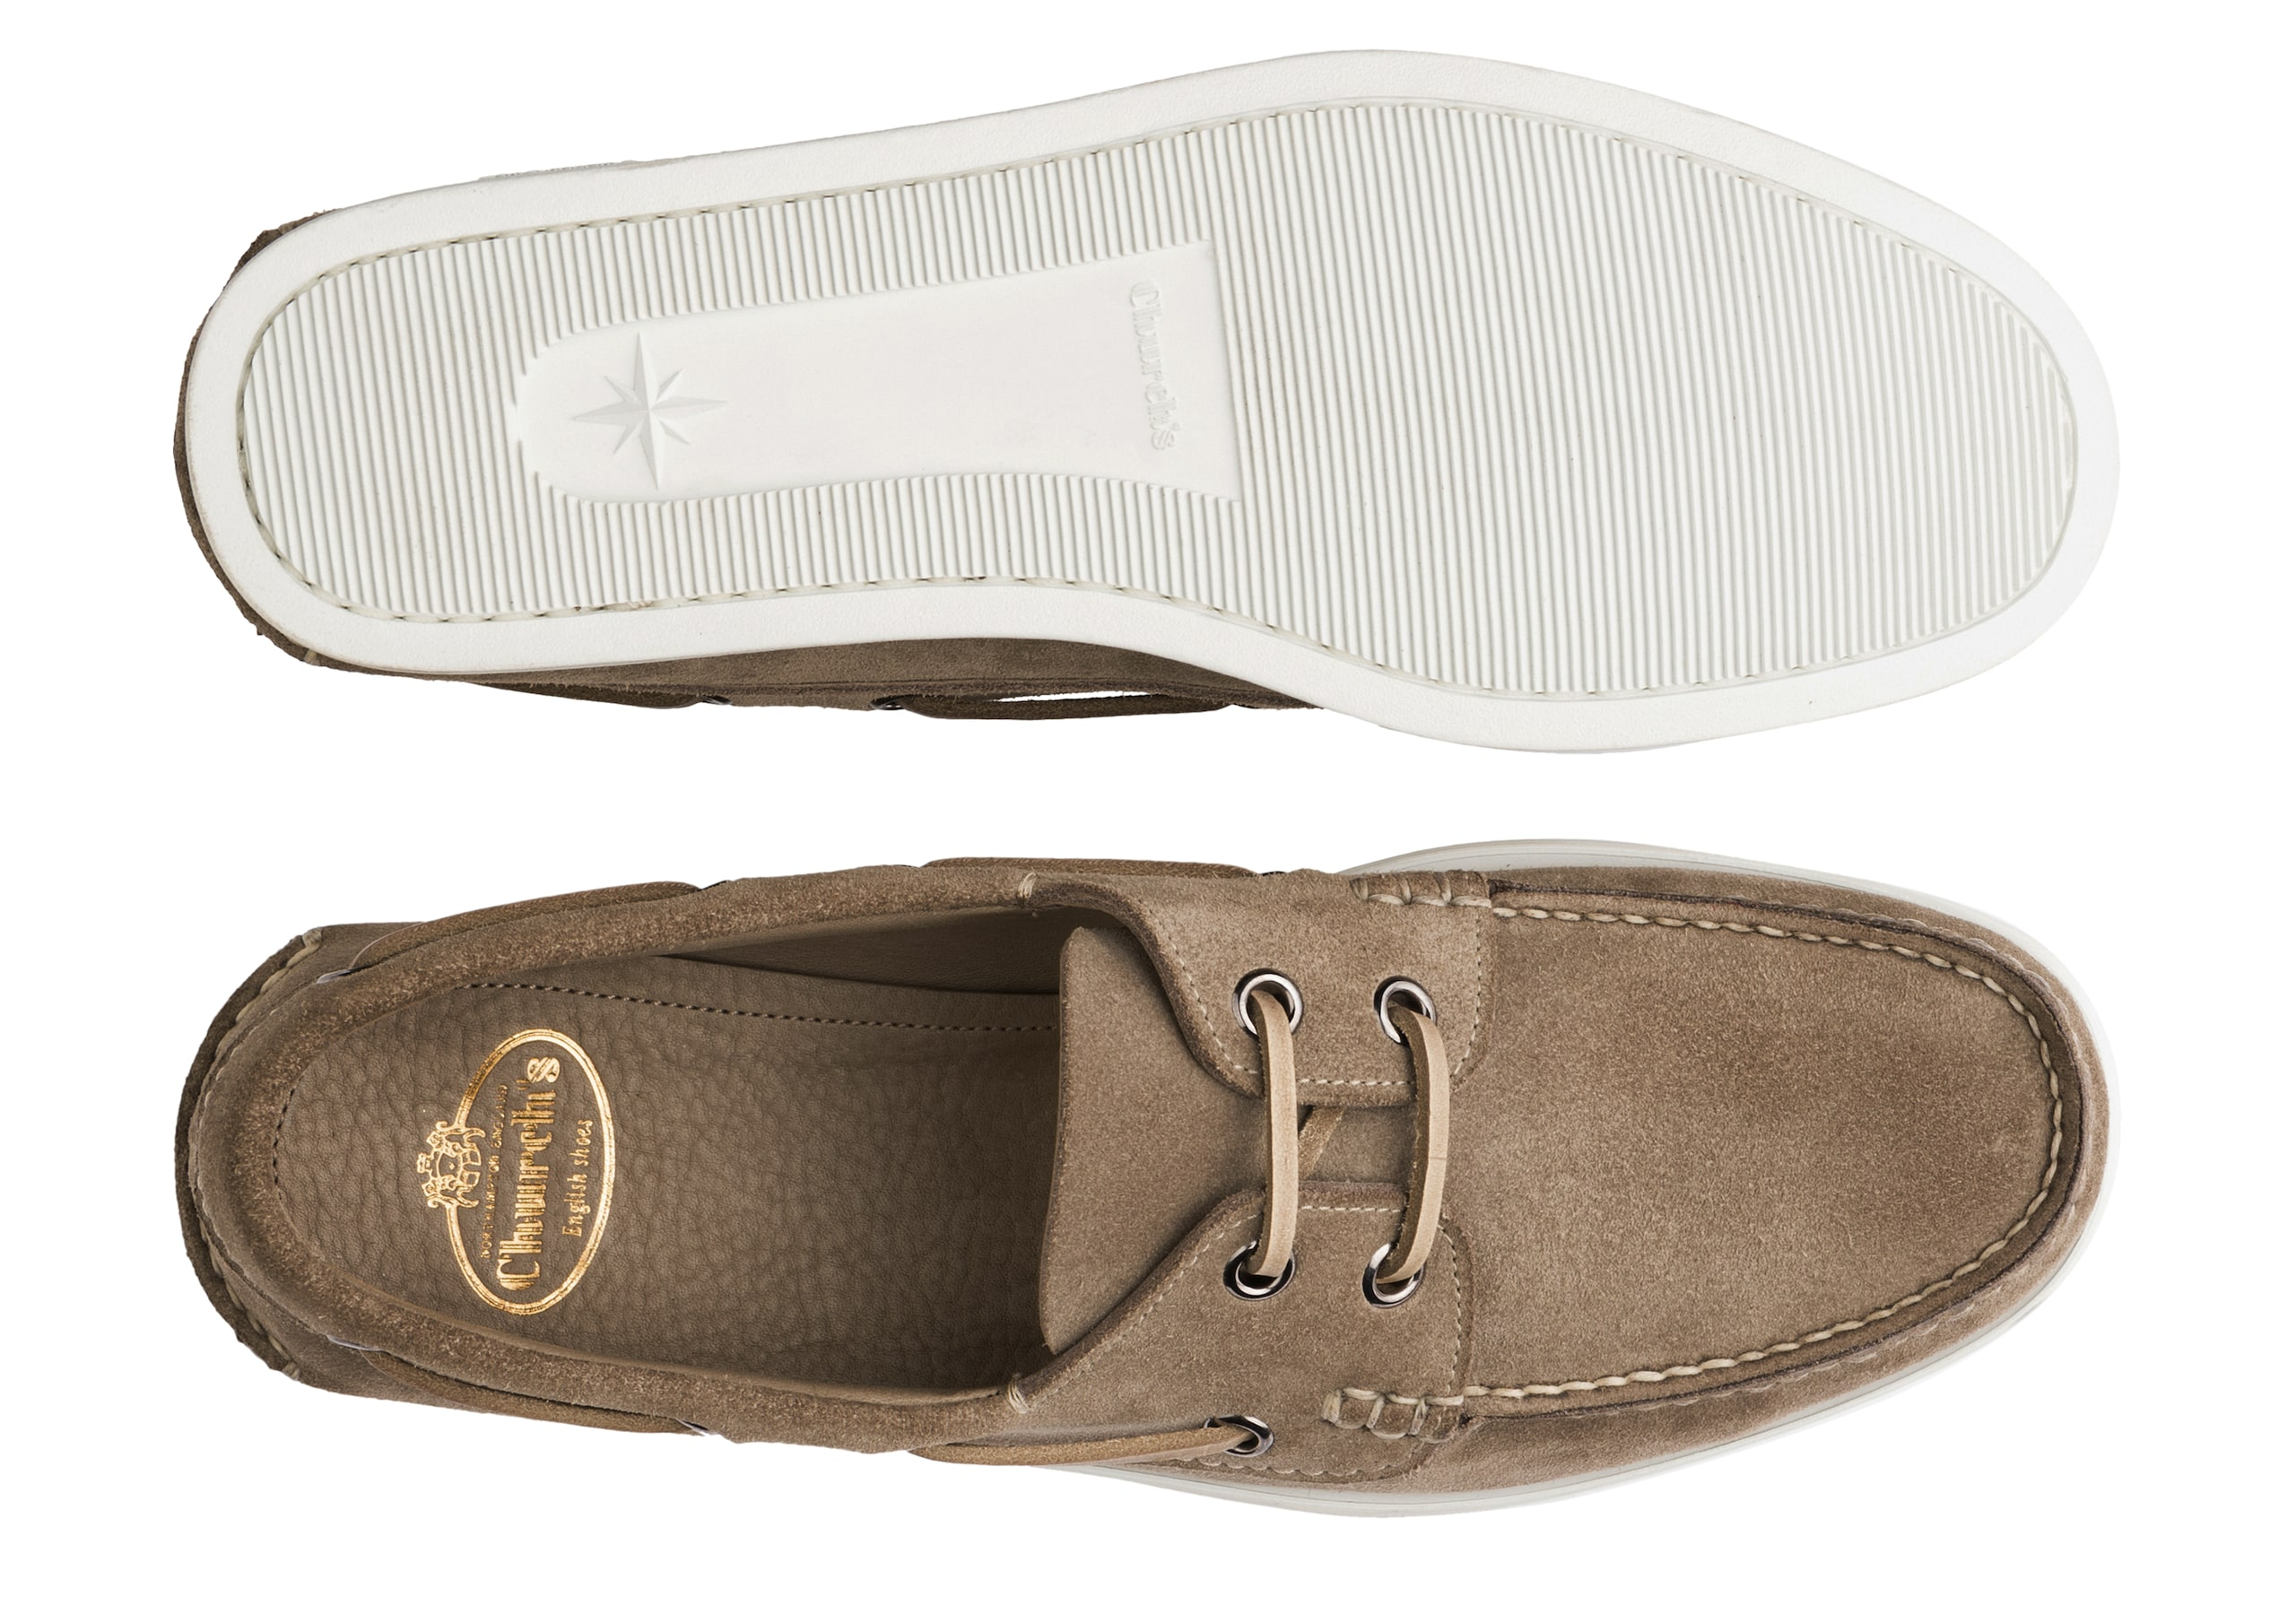 Marske Church's Suede Boat Shoe Grey